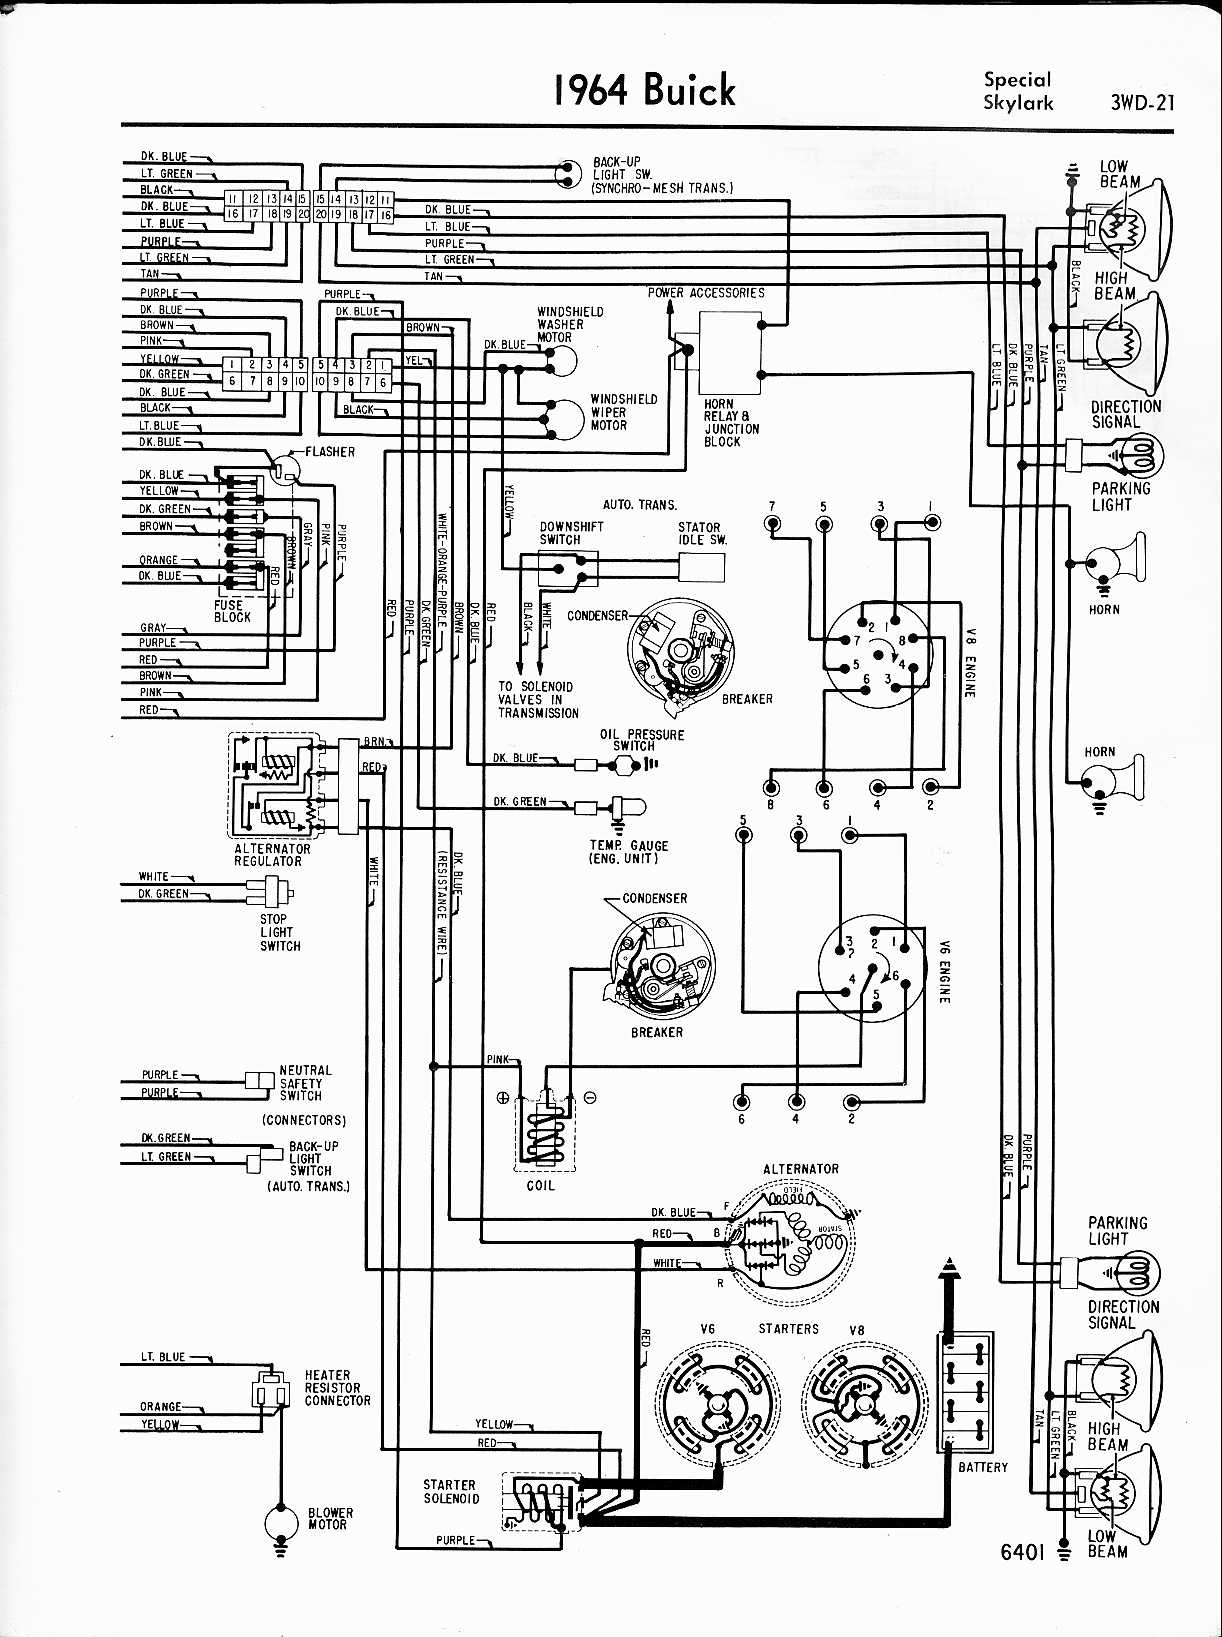 Buick Park Avenue Engine Wiring Diagram Library 1989 Century Transmission Wire Schematic 1966 Riviera Simple Rh David Huggett Co Uk 1996